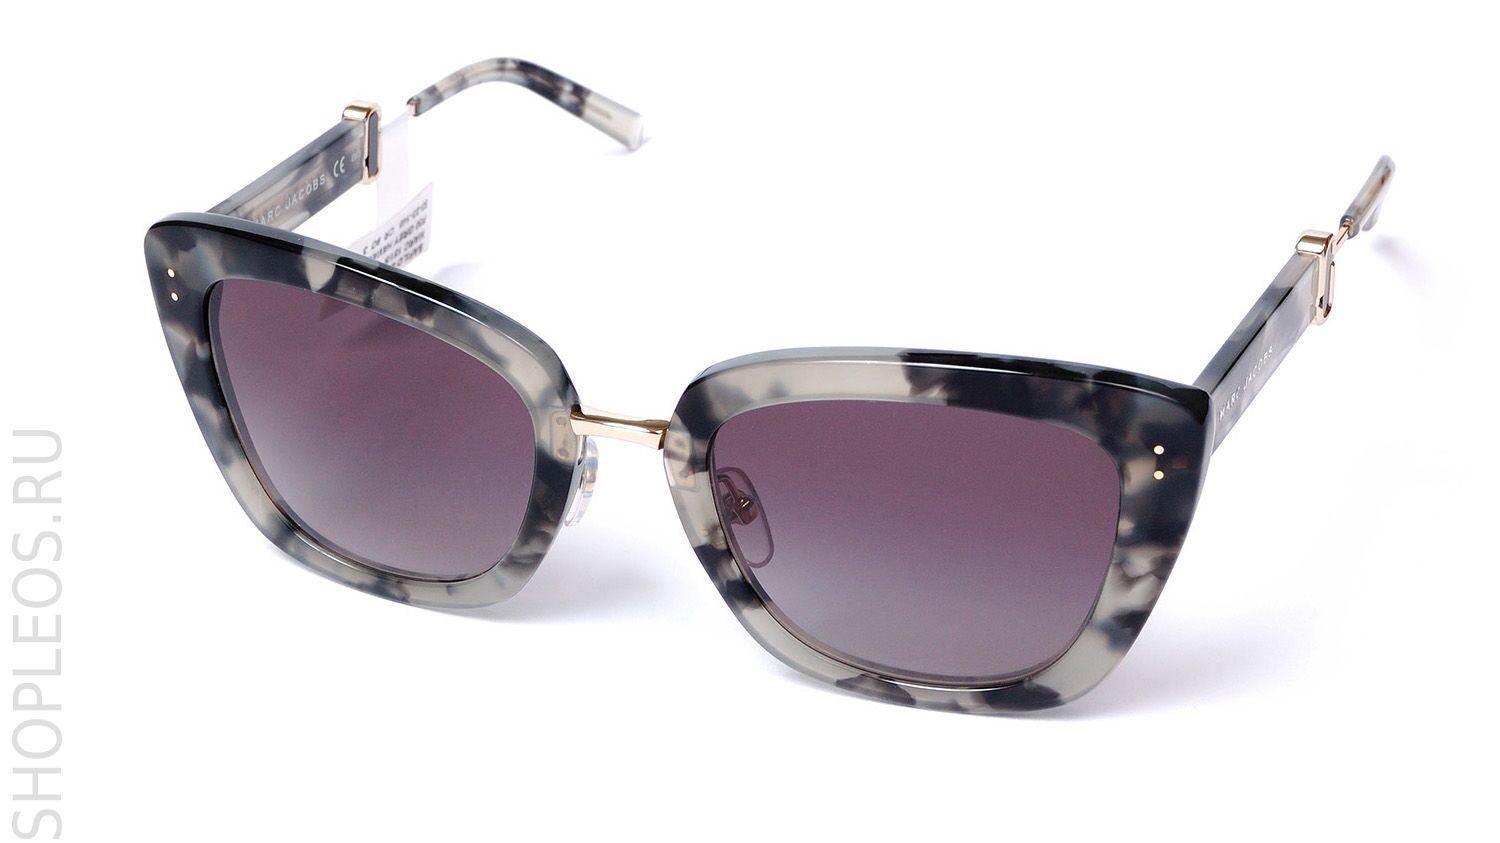 MARC JACOBS WOMAN MARC 131/S P30